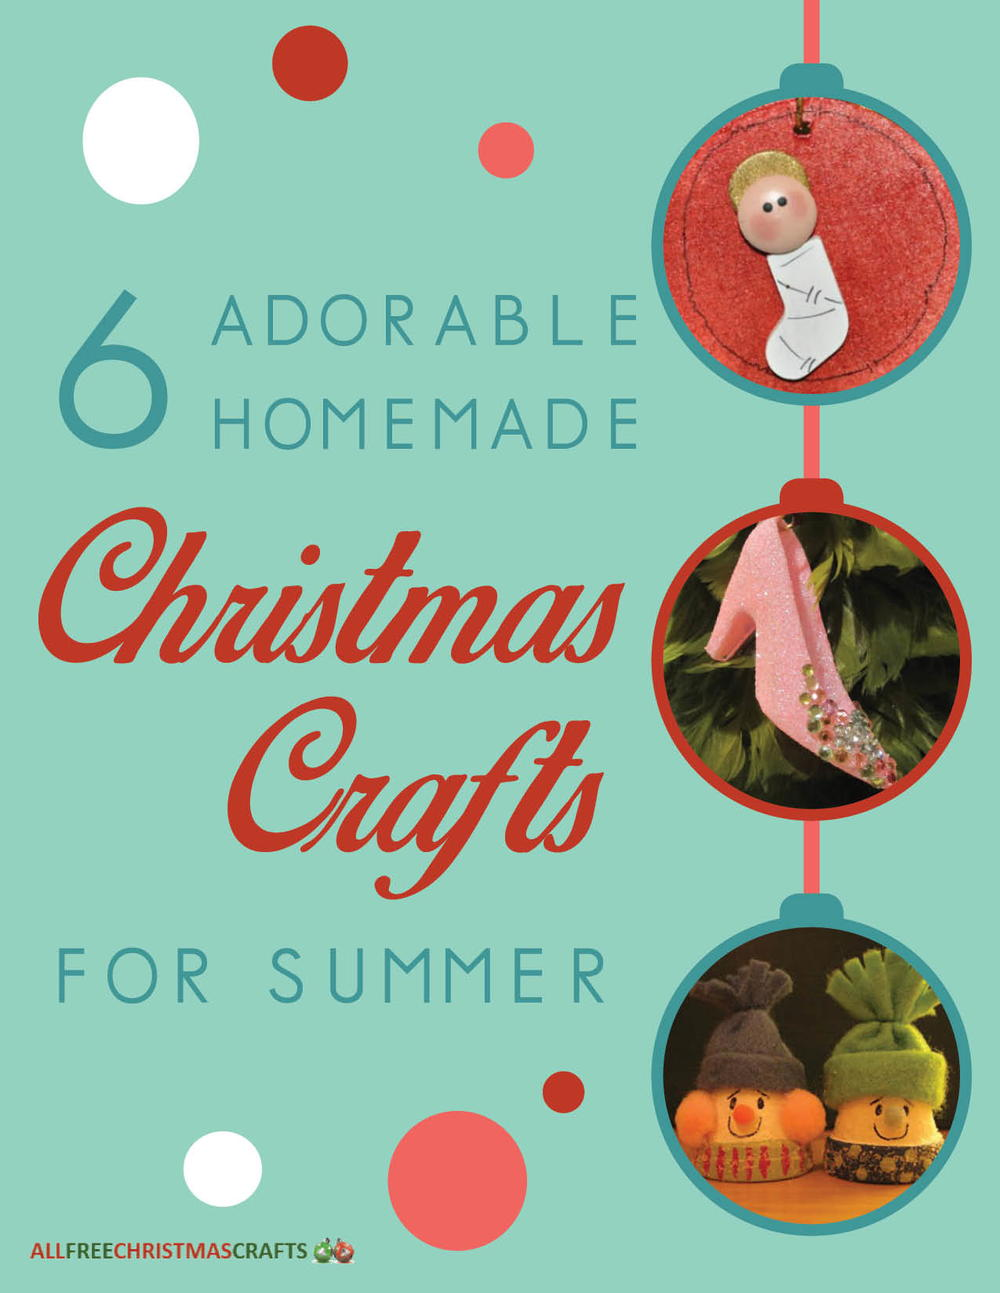 Free Christmas Crafts Ideas Part - 19: 6 Adorable Homemade Christmas Crafts For Summer Free EBook |  AllFreeChristmasCrafts.com